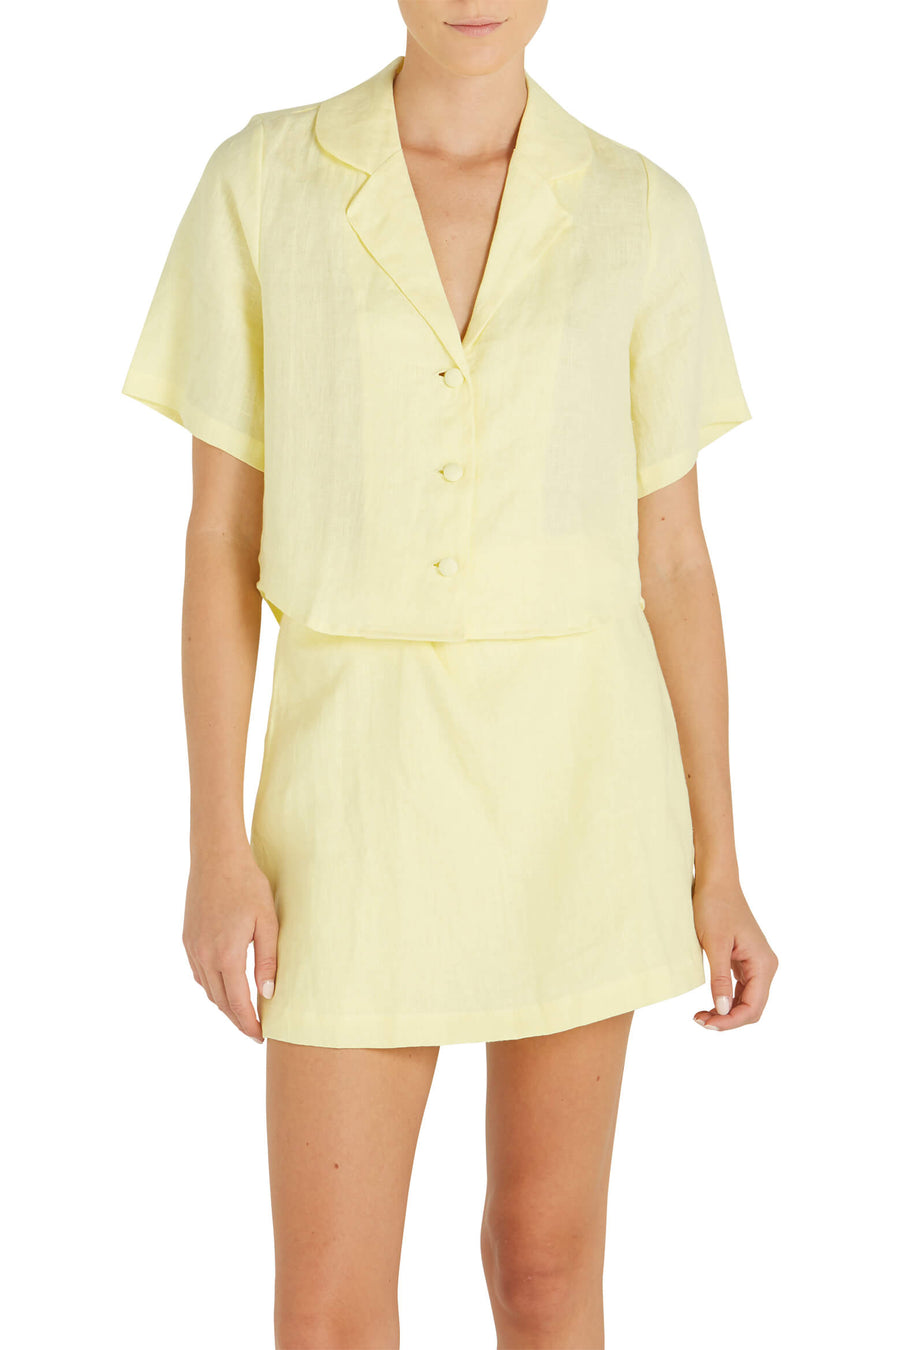 Faithfull The Brand Chaumont Shirt in Yellow at The New Trend